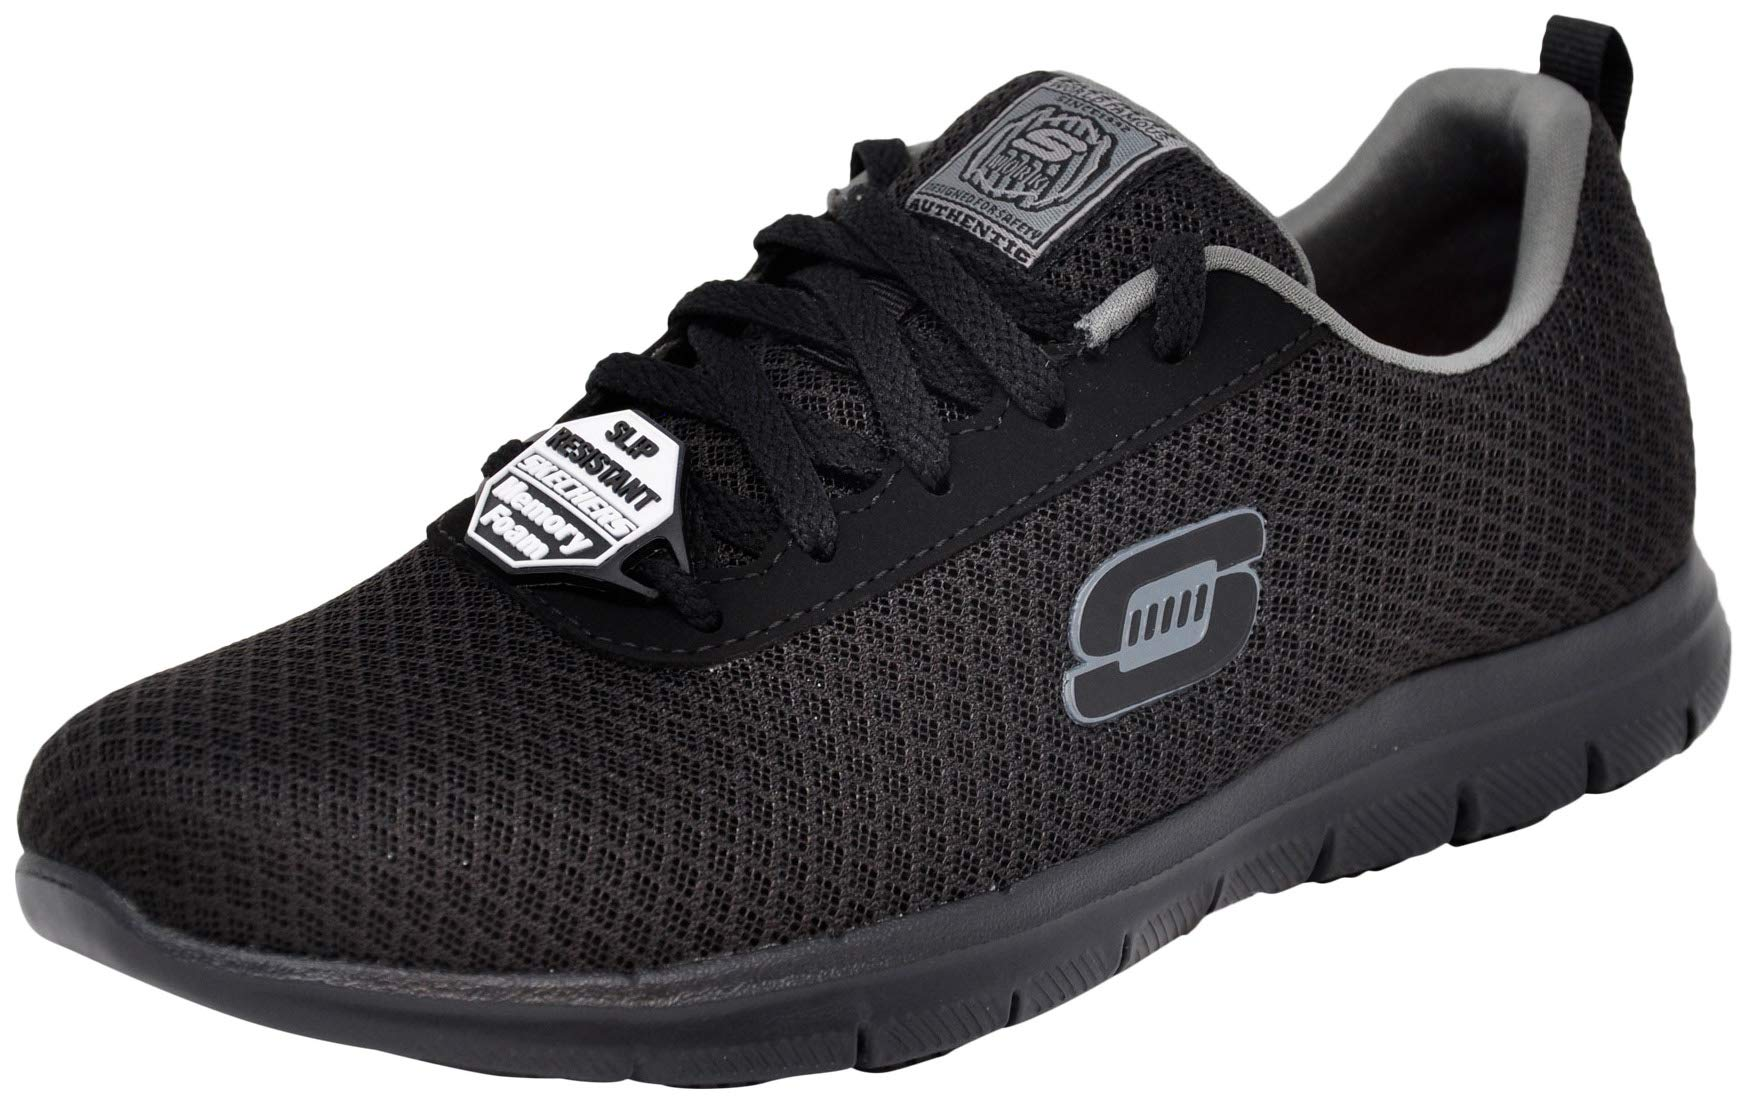 Skechers Women's Ghenter Bronaugh Lace up Work Shoes (6 M US, Black/Charcoal)